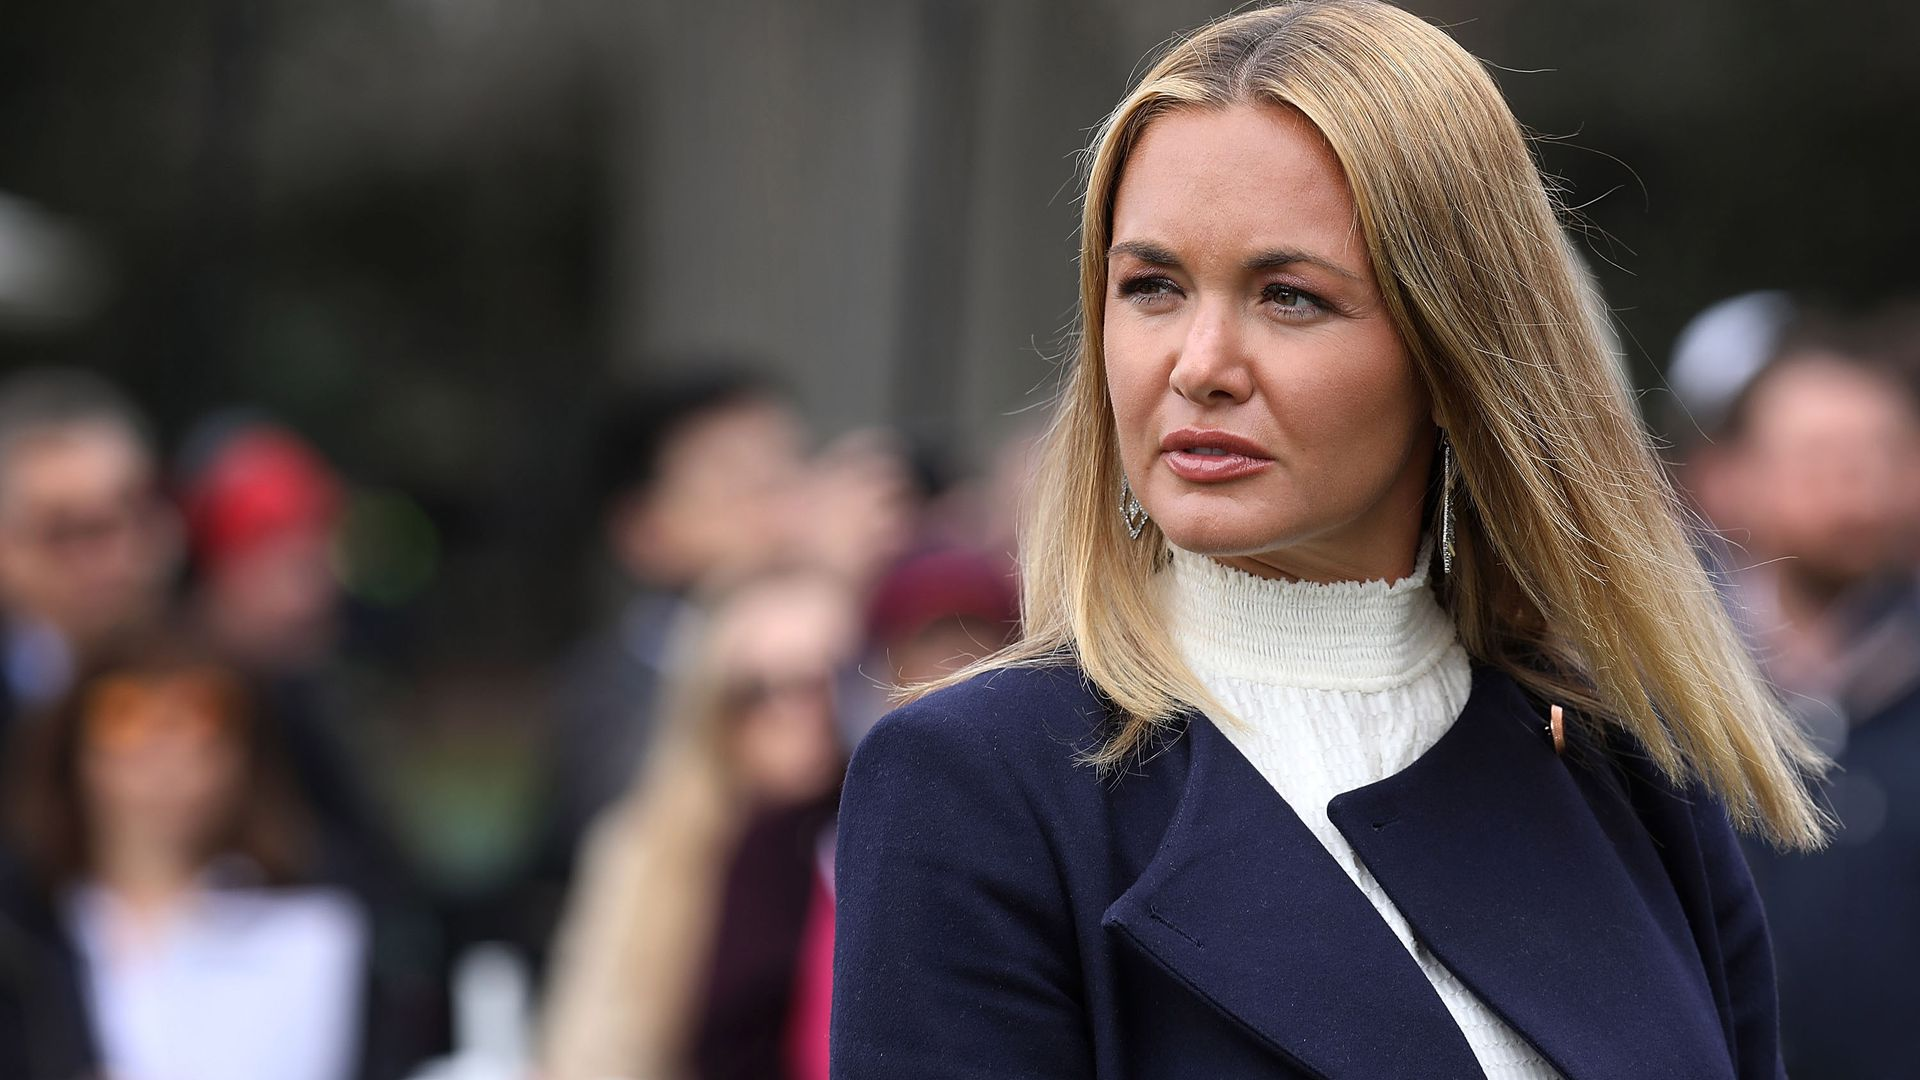 Vanessa Trump was opened an envelope filled with white powder.